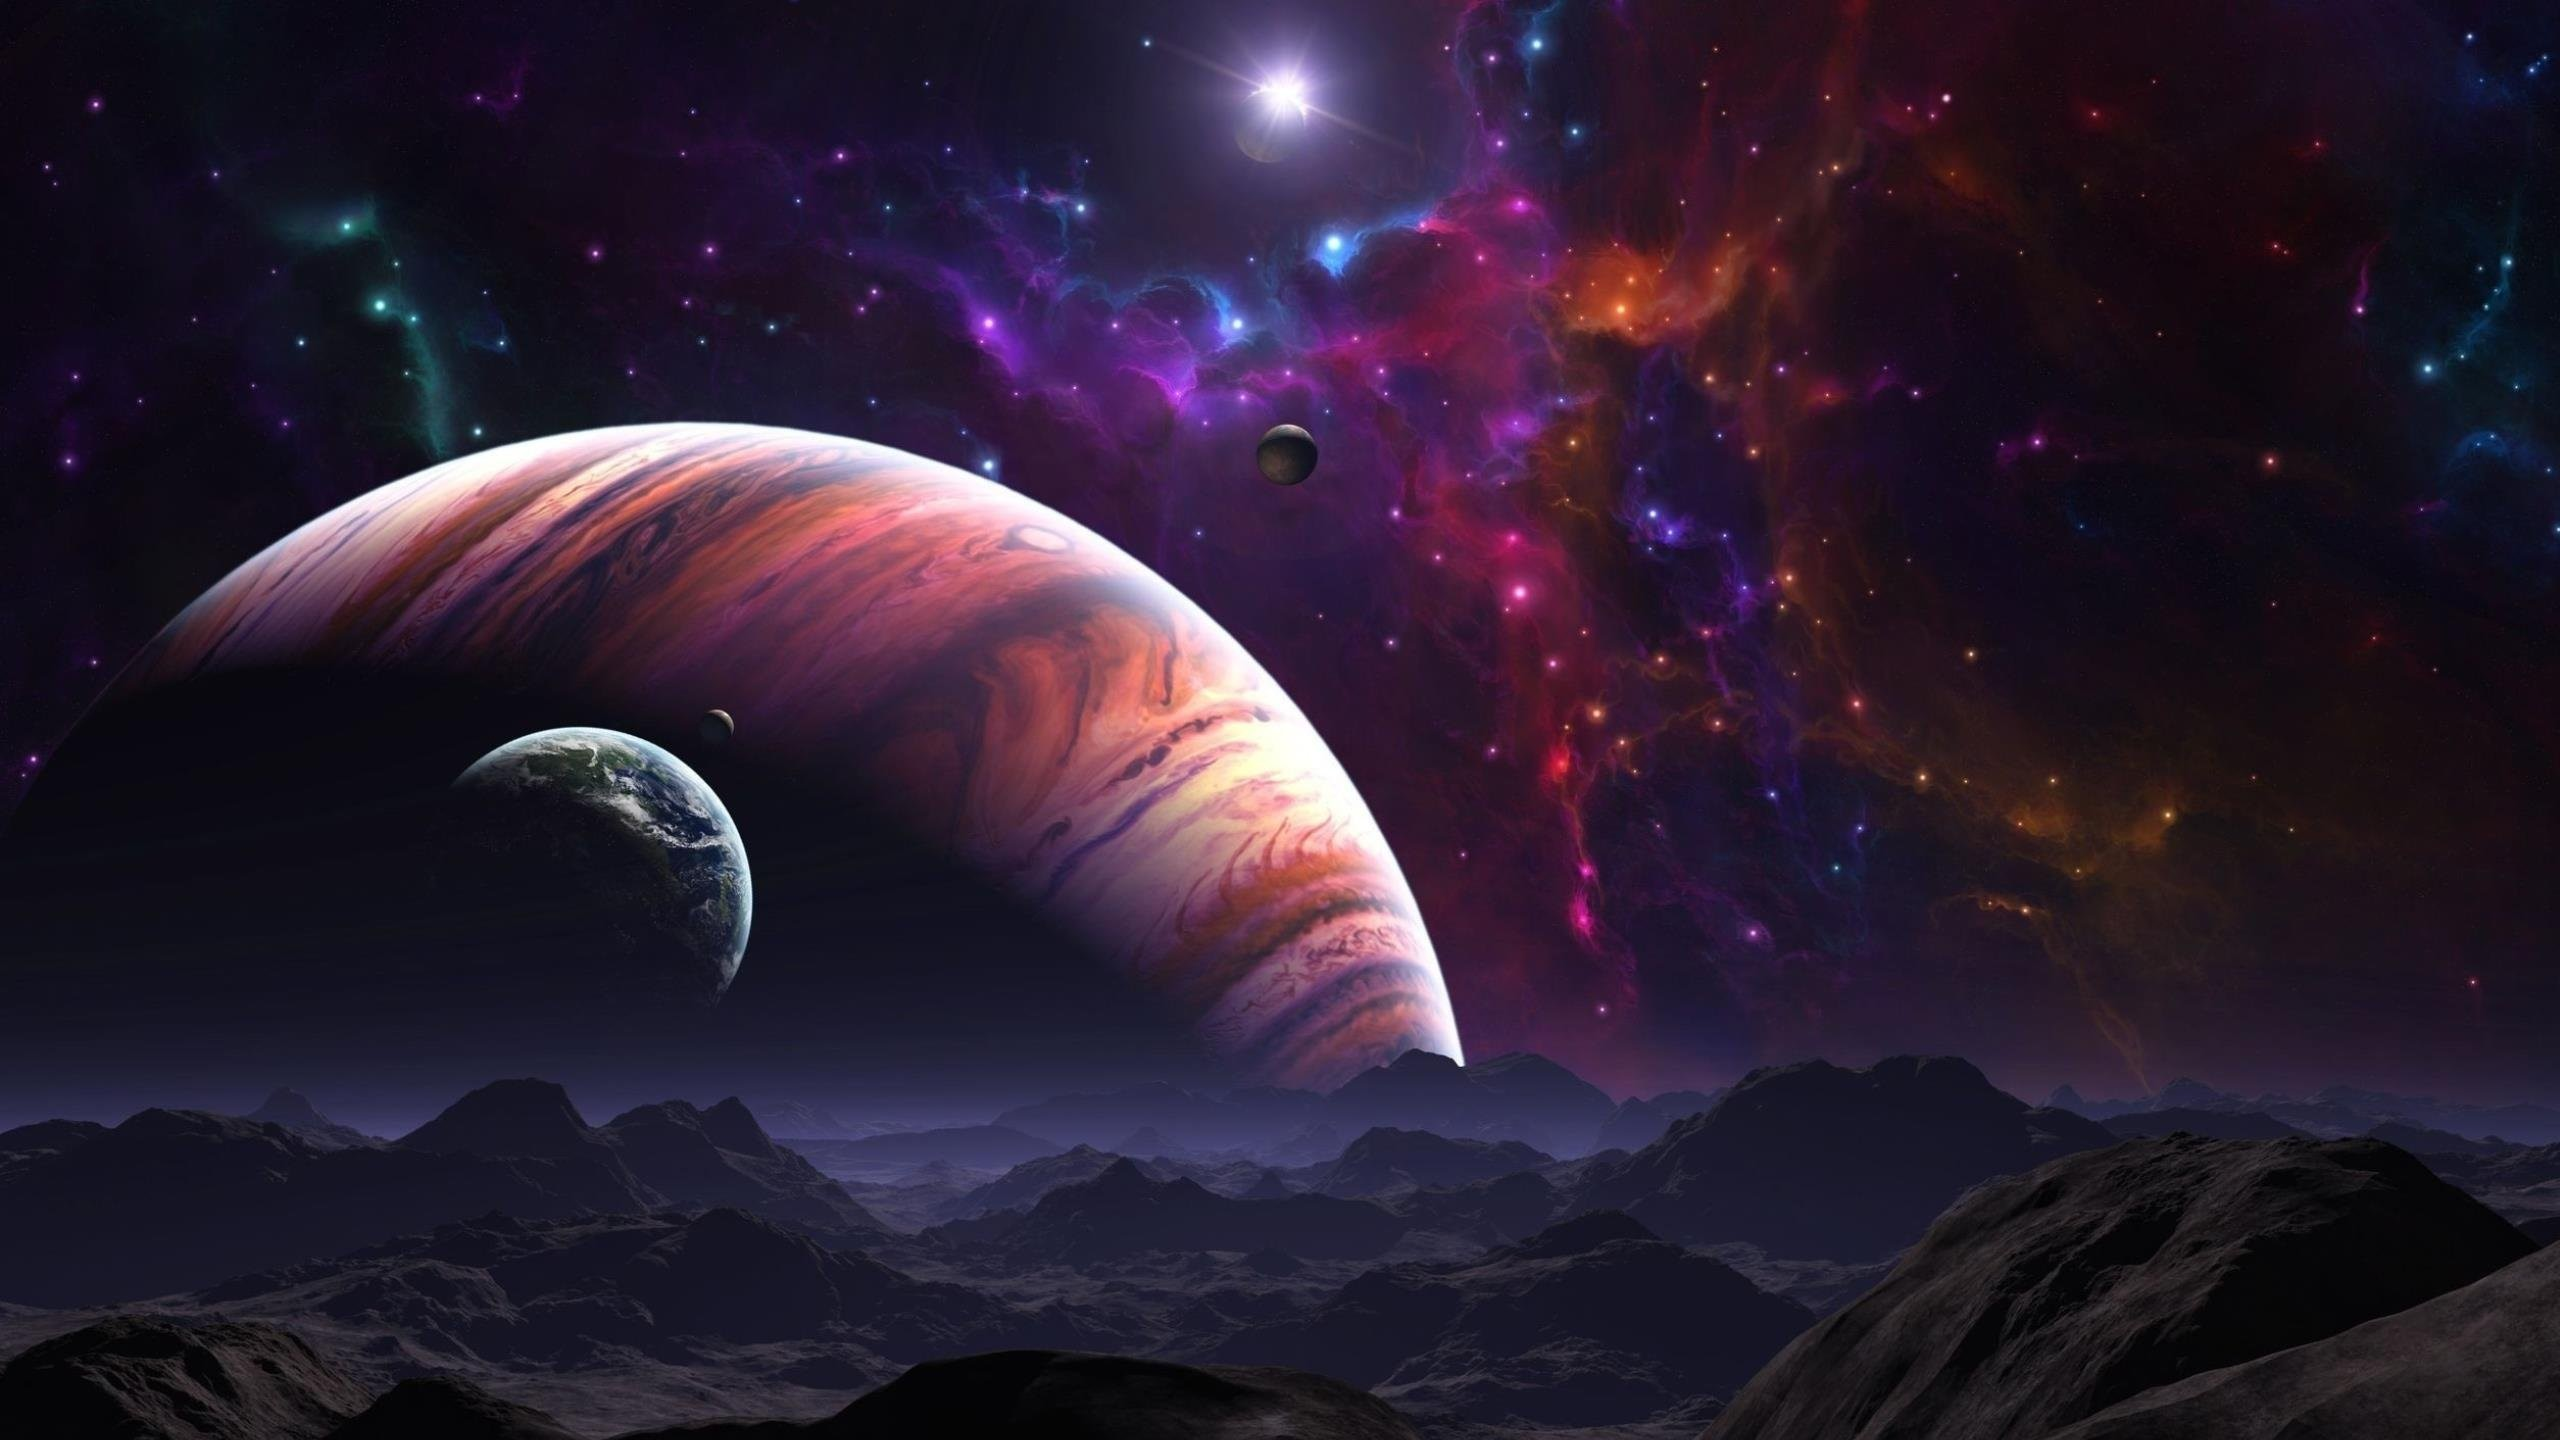 … Space Planet Galaxy Planets Star Stars Univers Wallpaper   ·  Animated …